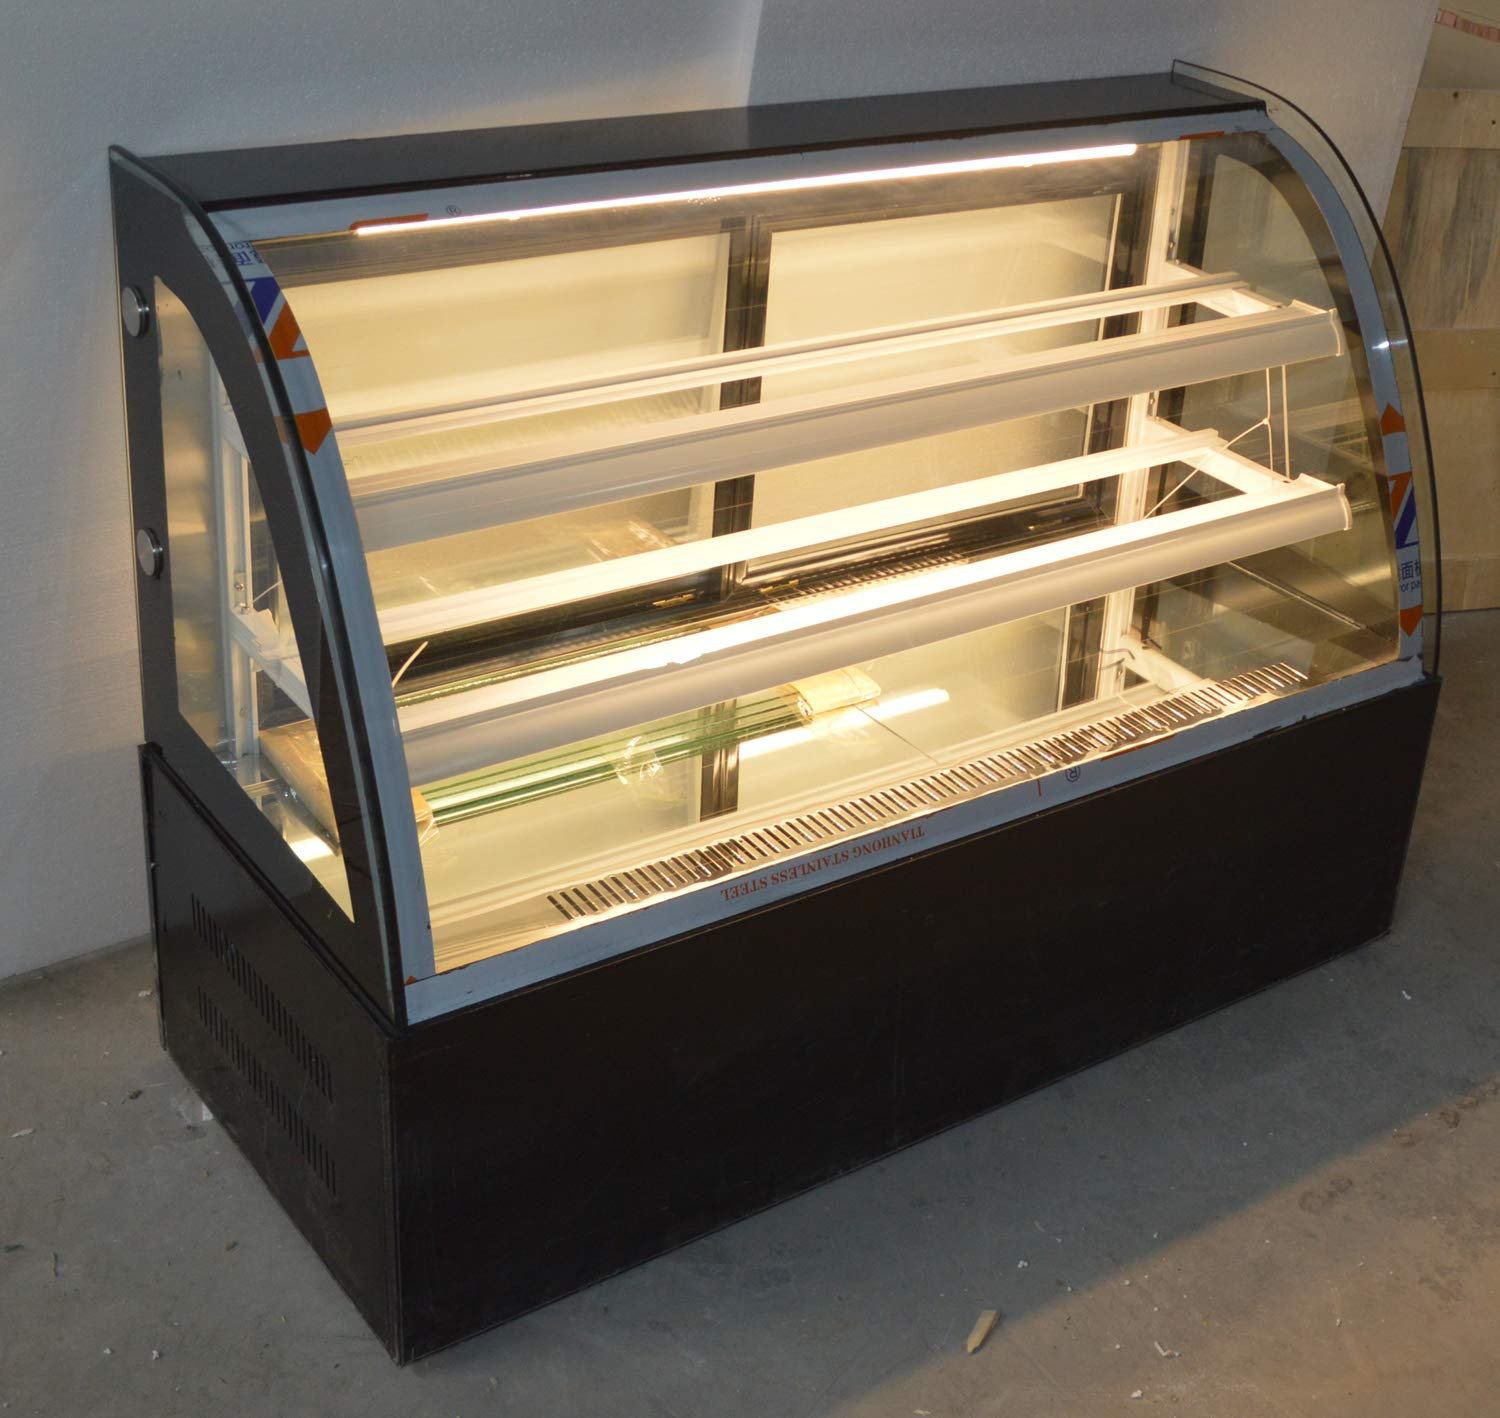 INTBUYING 47'' Countertop Bekery Cabinet Display Case Glass Refrigerated Cake Showcase 220V 315W 36-46F by INTBUYING (Image #2)